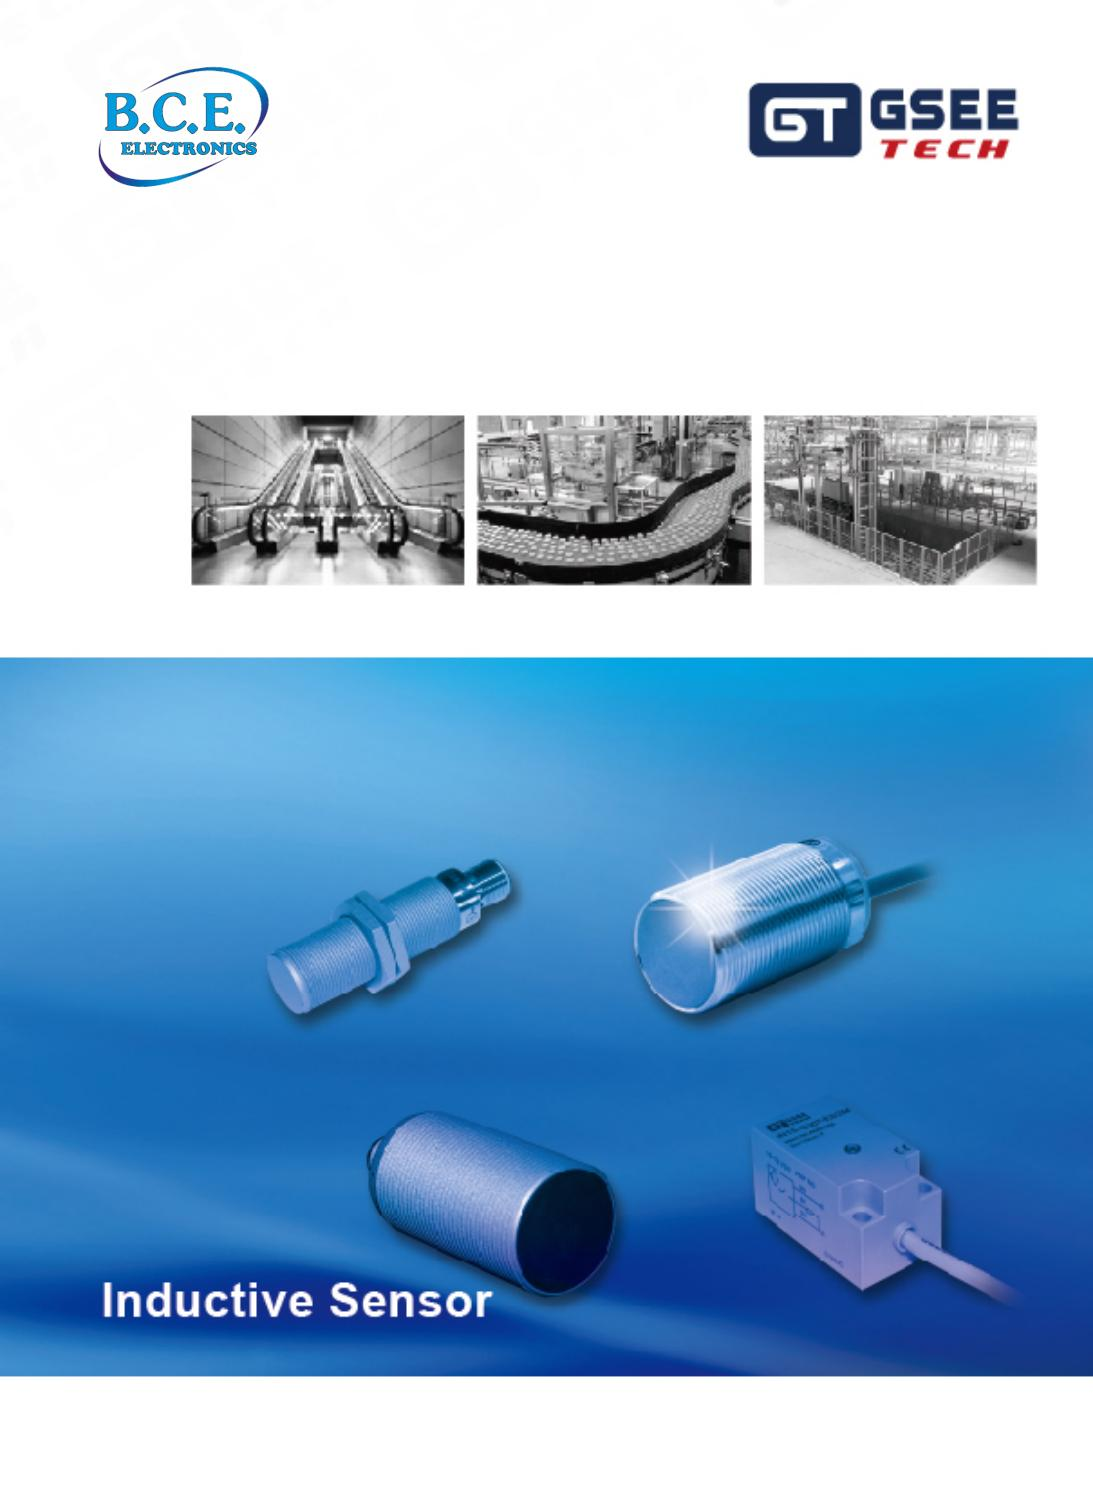 GSEE TECH Inductive Sensor - BCE by B.C.E. S.r.l. - issuu